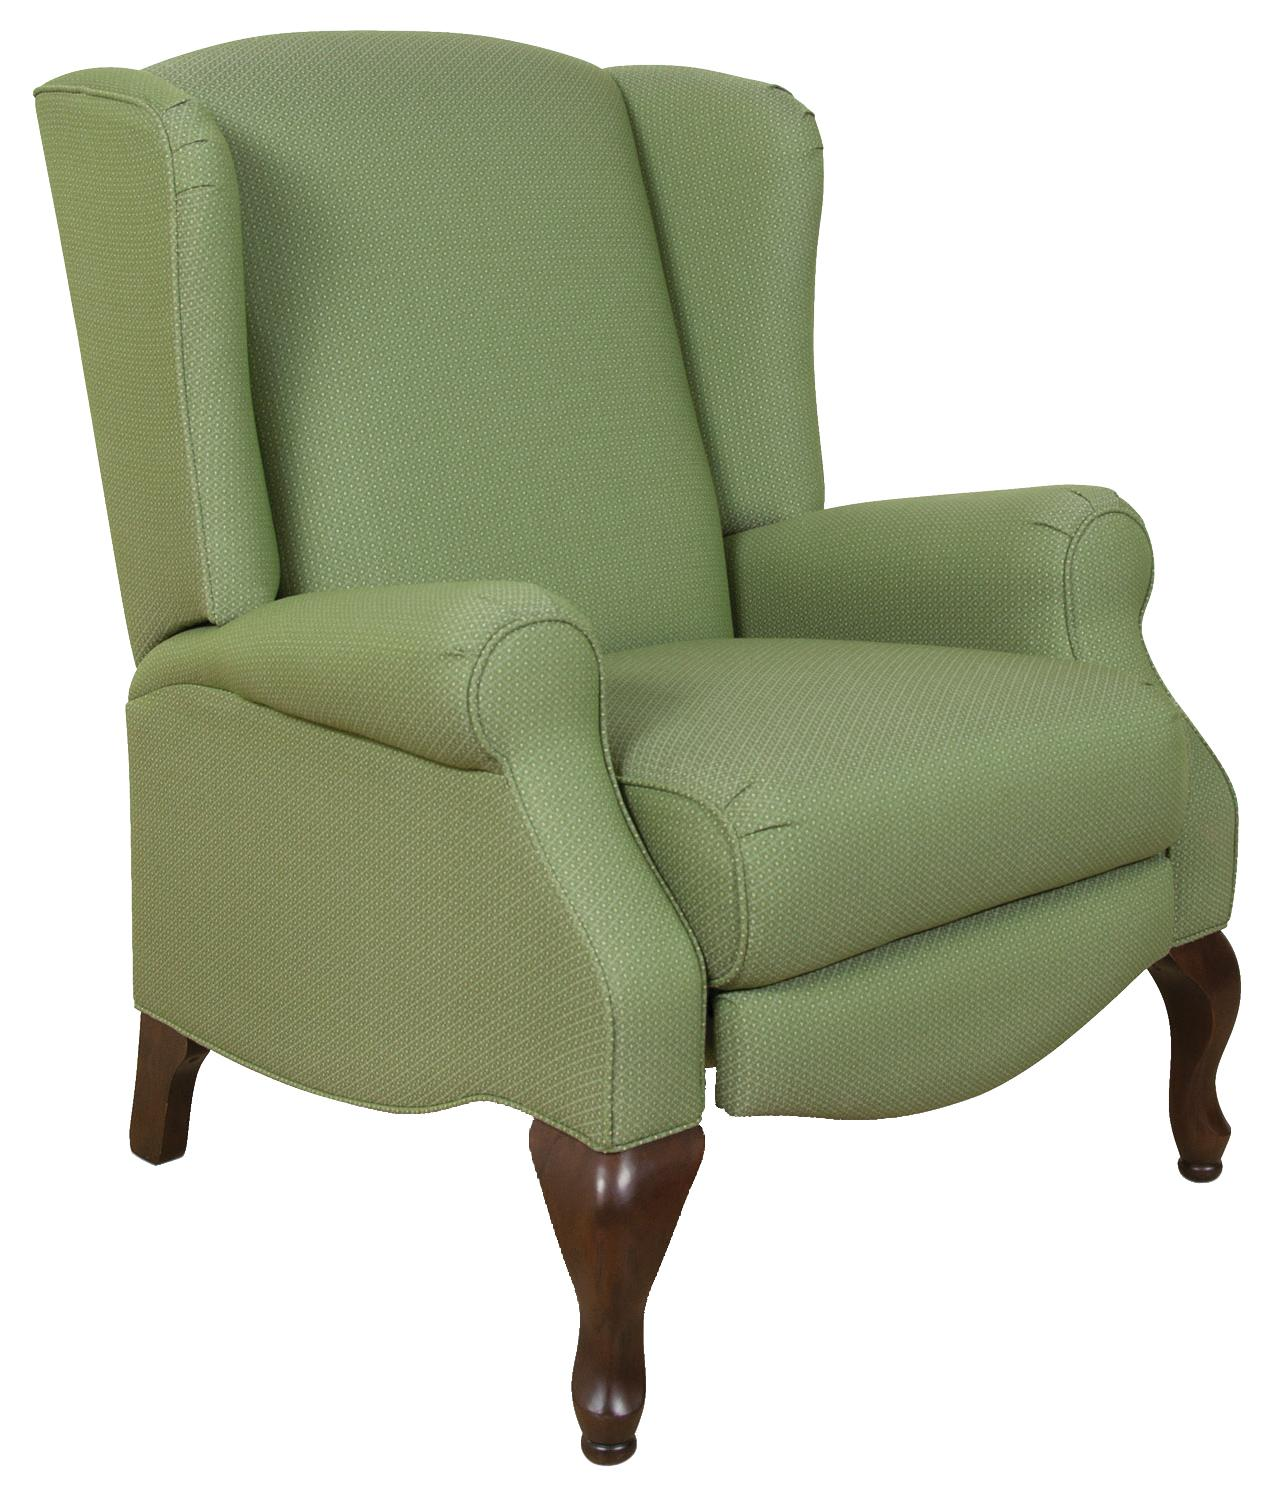 410 Martha Recliner by England at Rooms for Less